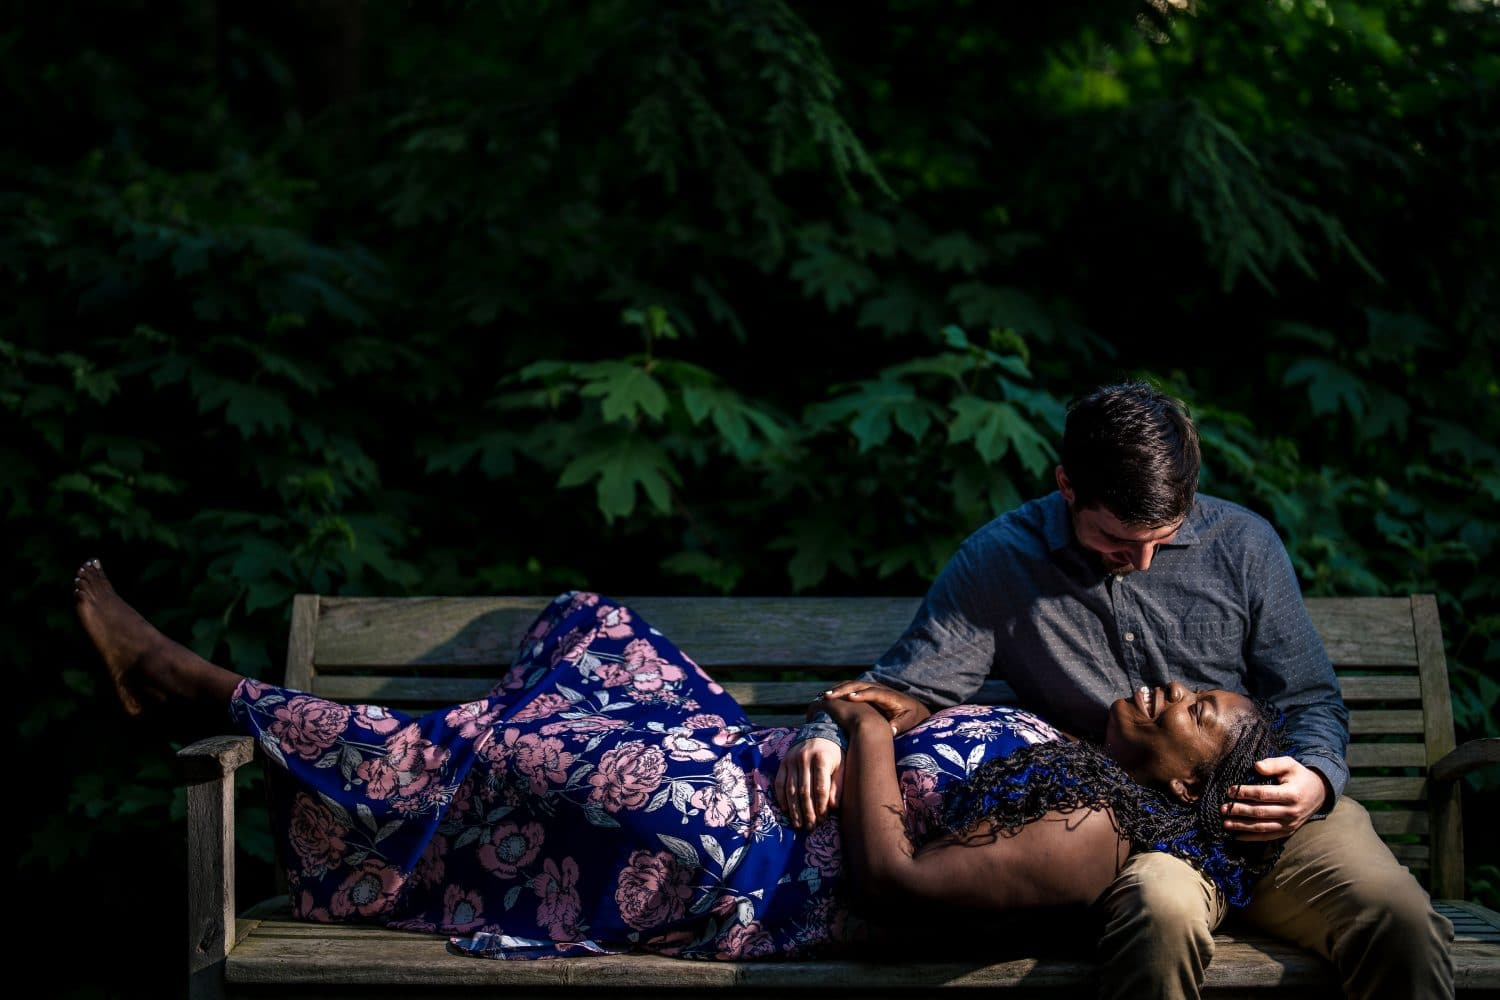 Dinah laying on the bench with Corey Longwood Gardens Engagement Shot By John Ryan